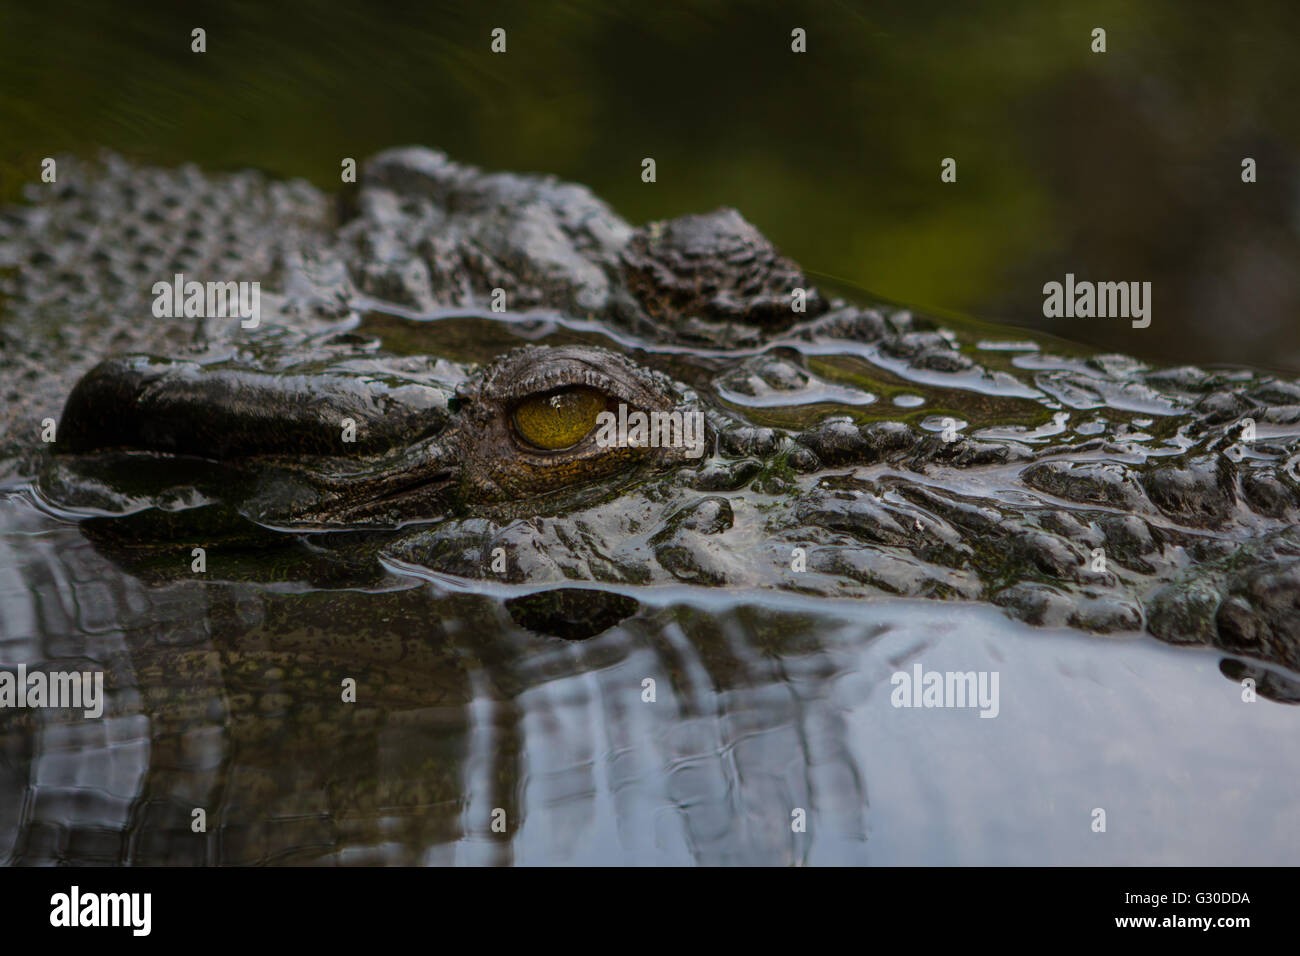 Eyes and head of the 3rd Largest captive Saltwater crocodile in the Philippines named Lapu-Lapu - Stock Image